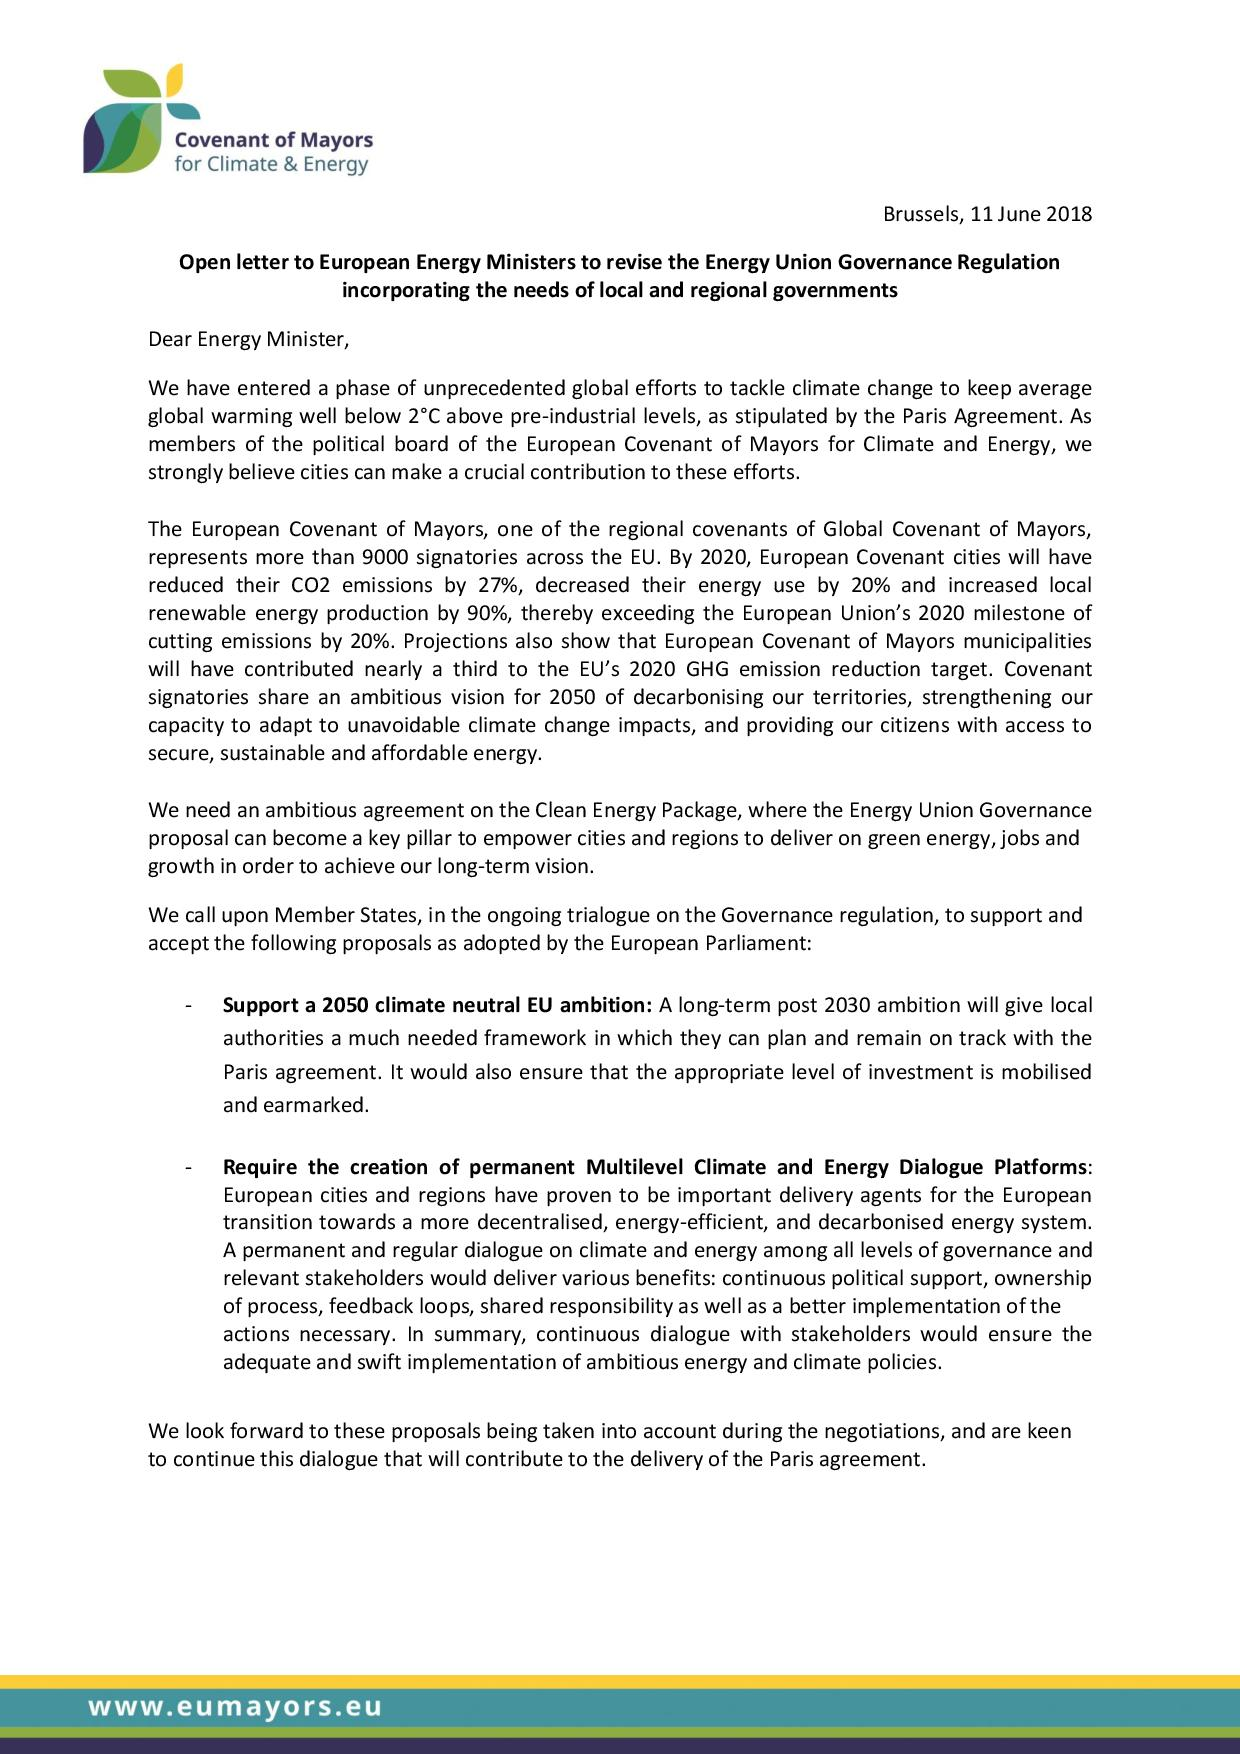 CoM Open letter to Energy Ministers Governance Regulation page 001